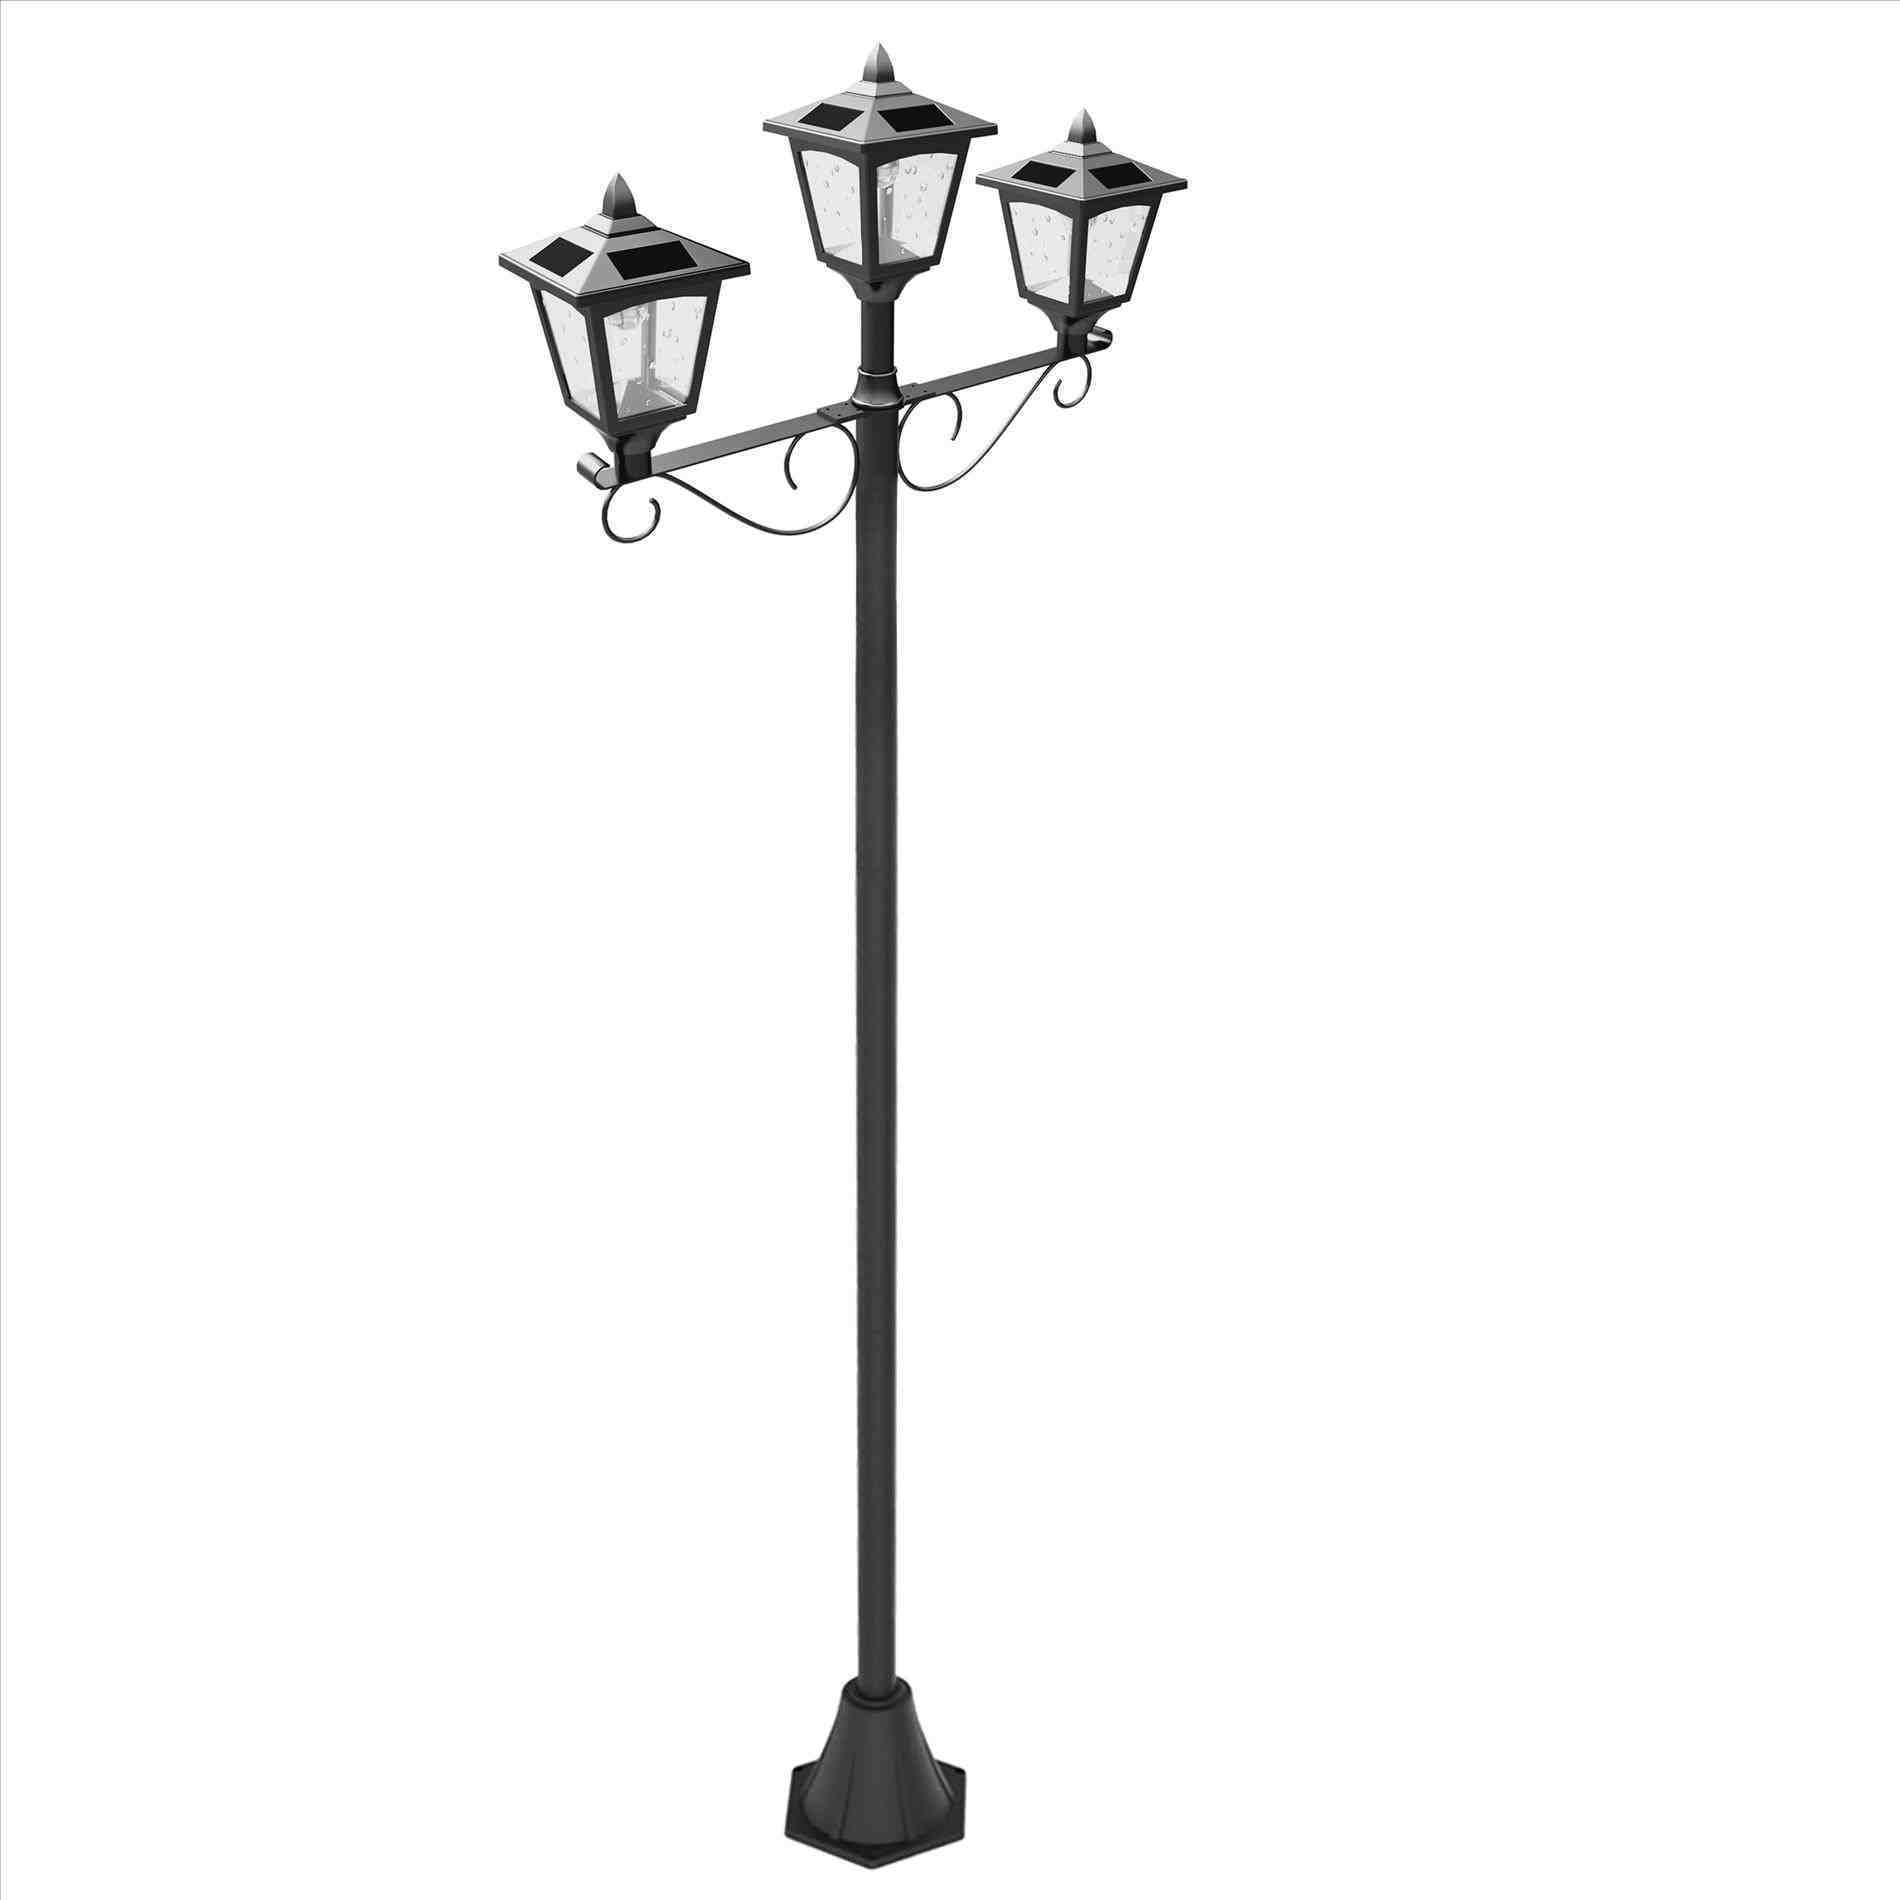 1900x1900 More About Vintage Street Lighting Update